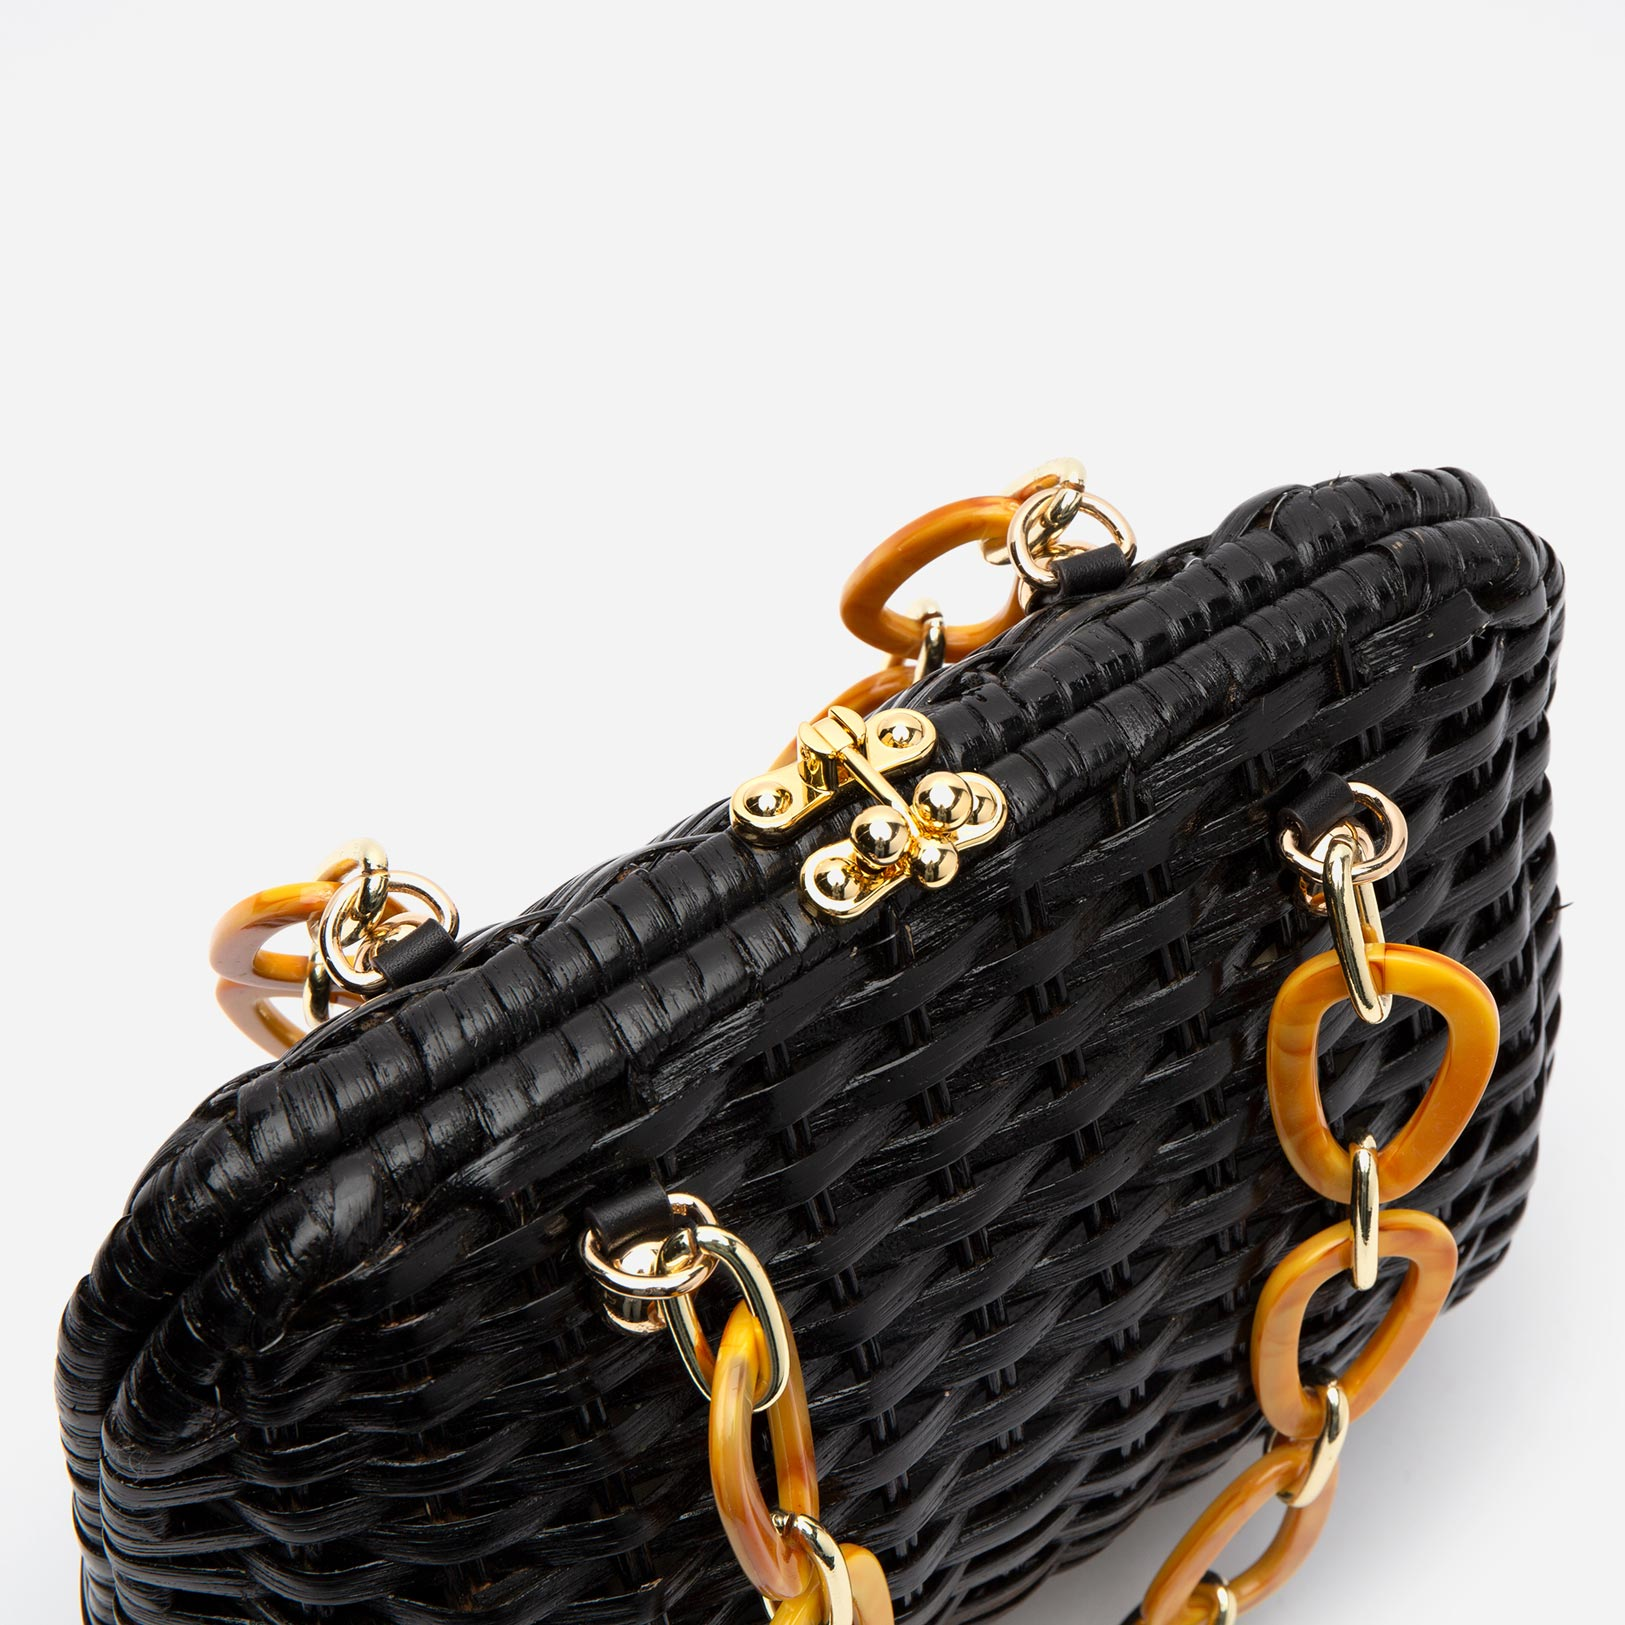 Hen Wicker Basket Black